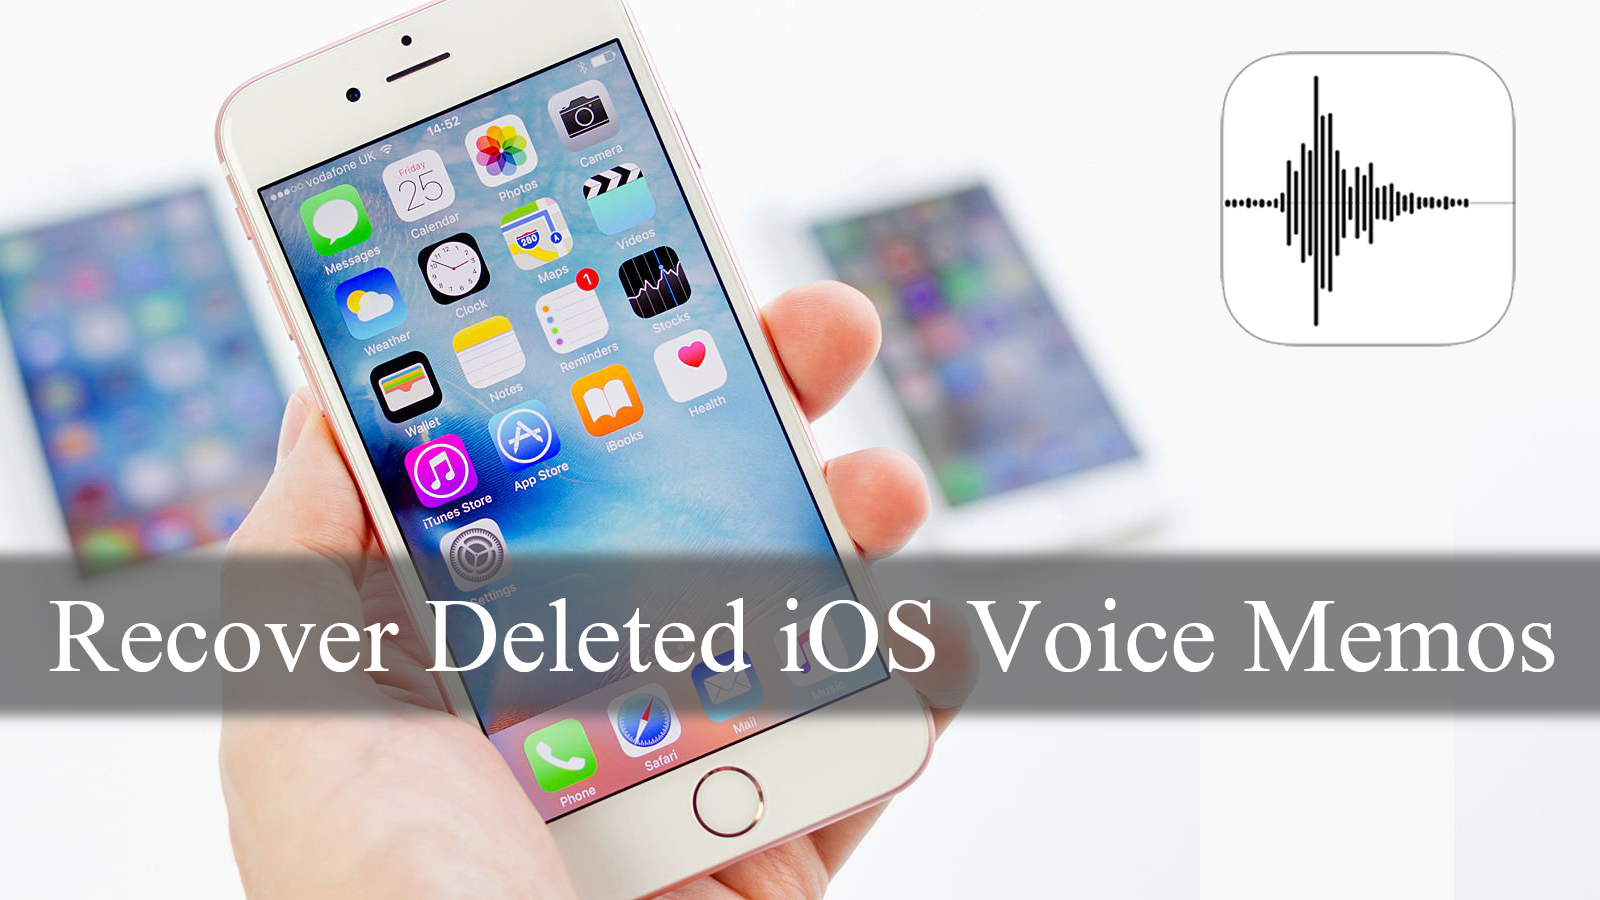 [GUIDE]- How to Recover Deleted Voice Memos from iPhone/iPad Without Any Backup